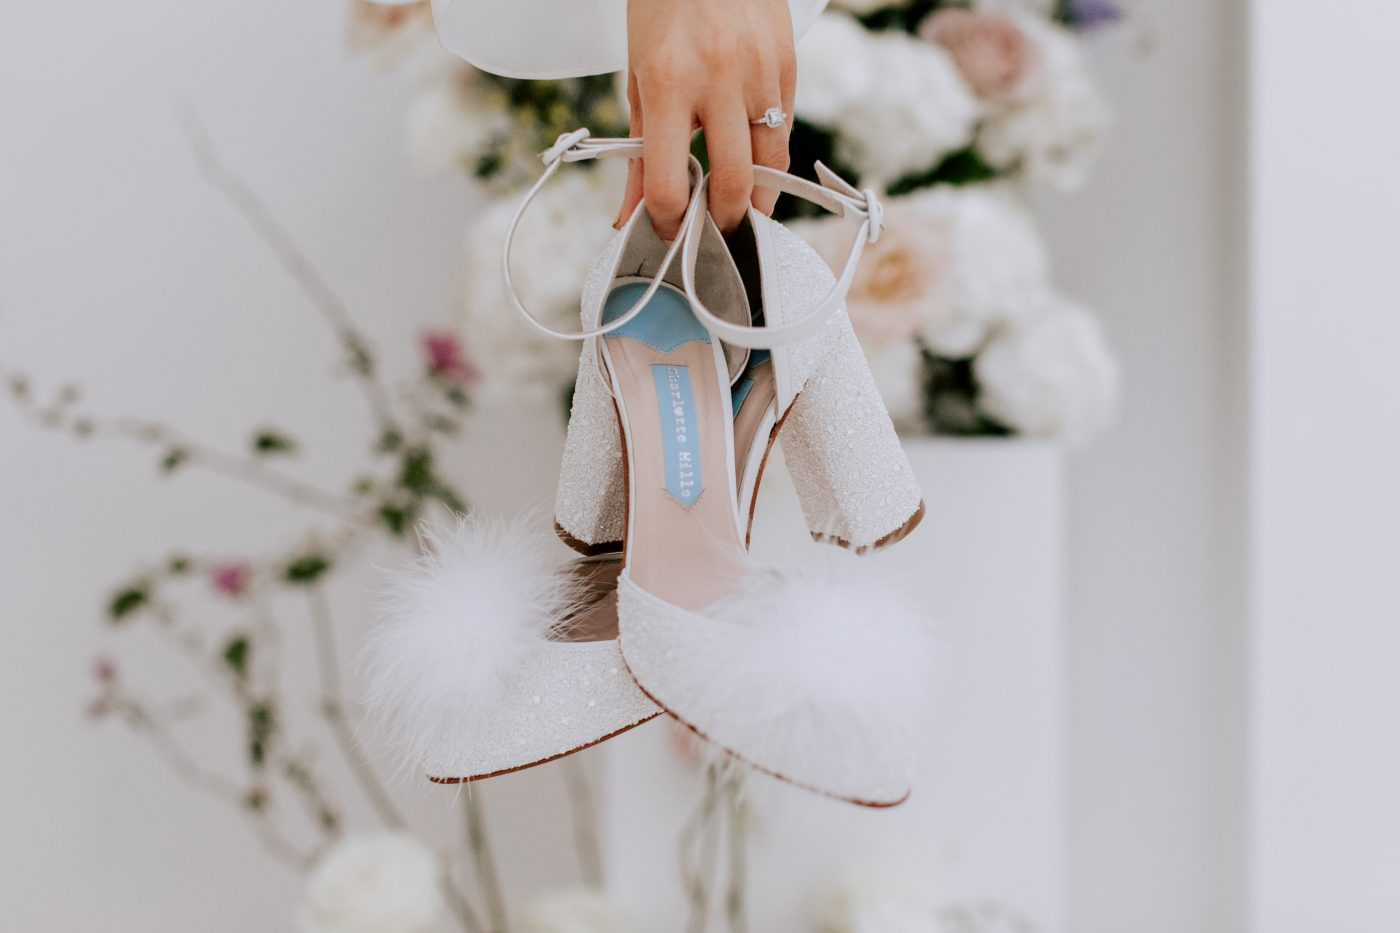 """<a href=""""https://charlottemills.com/collections/wedding-shoes/products/juniper-pearl"""" target=""""_blank"""" rel=""""noopener noreferrer"""">Juniper Pearl Pom Pom by Charlotte Mills</a> £265"""